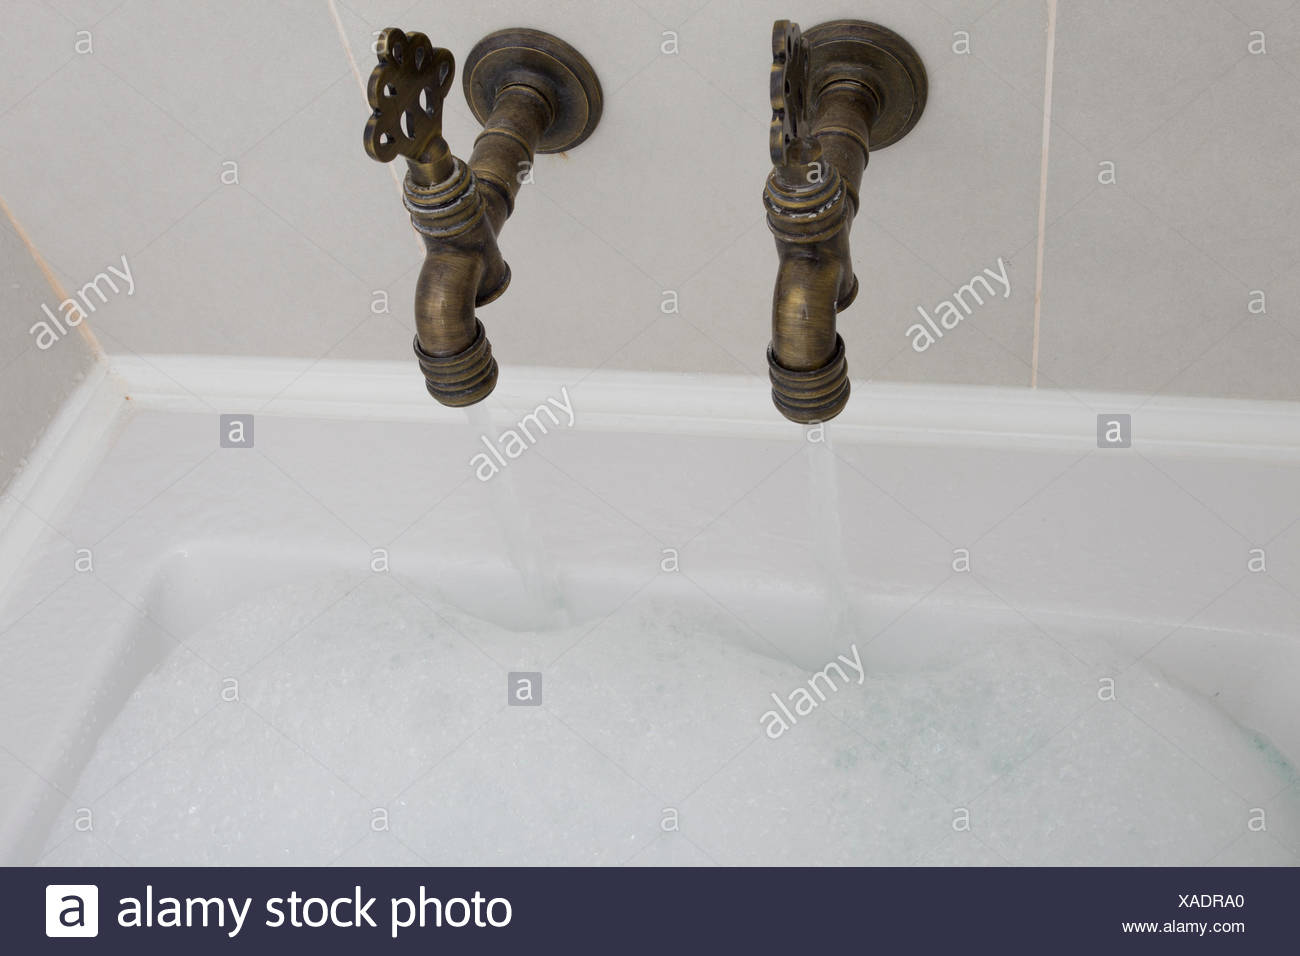 Magnificent Old Fashioned Bathroom Taps Photos - Bathtub for ...